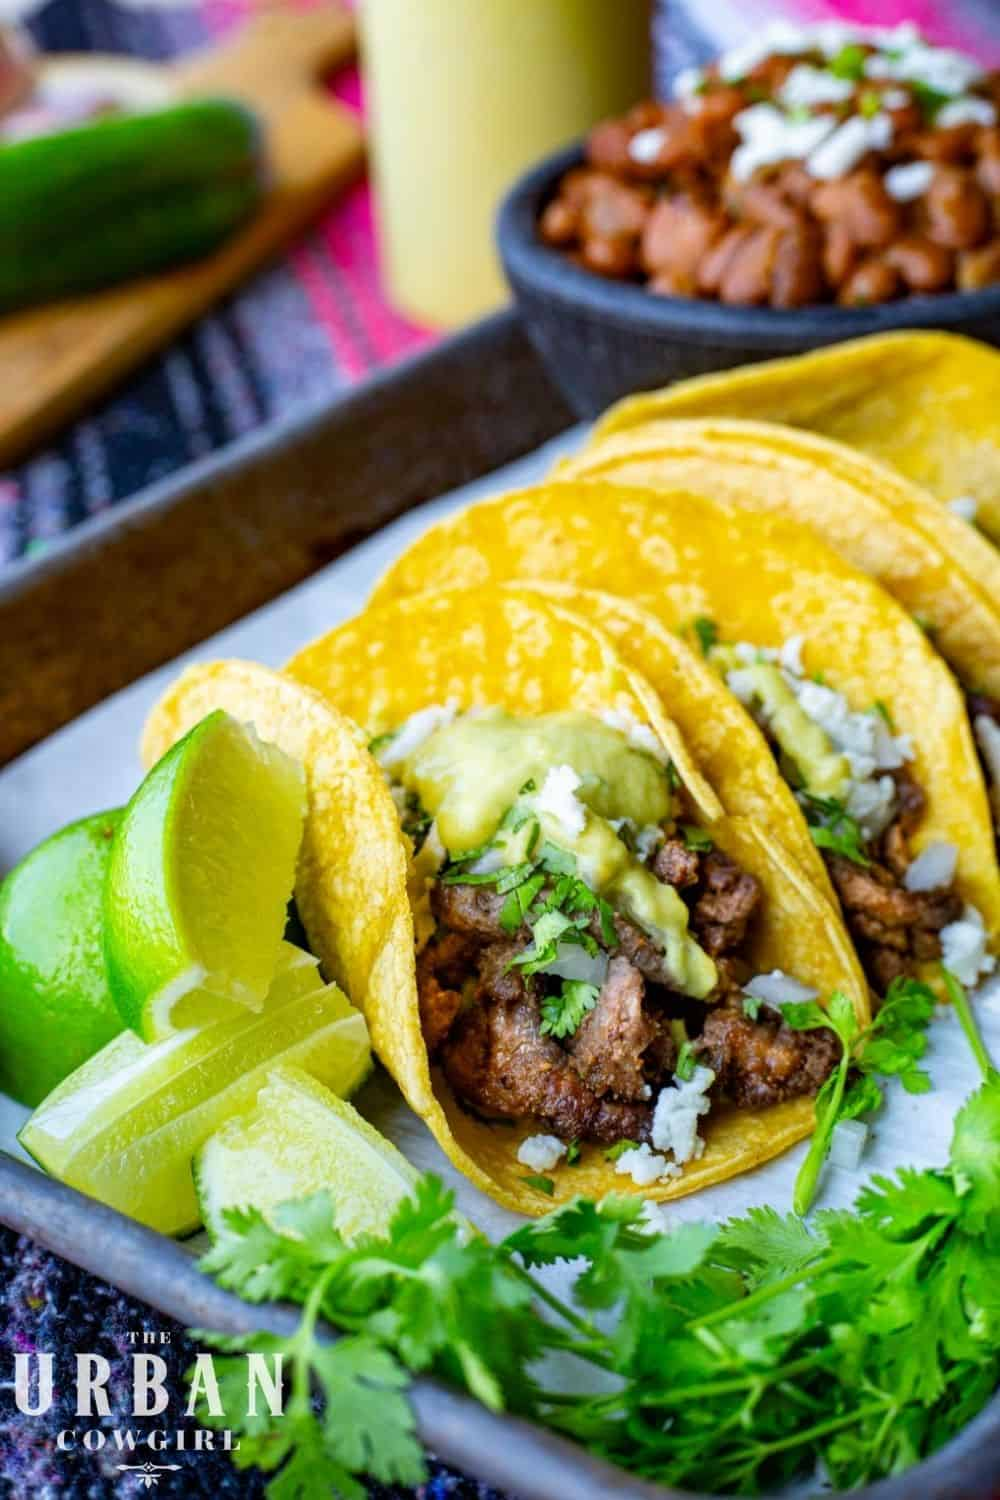 A pan of steak street tacos covered in a creamy jalapeno sauce - close up